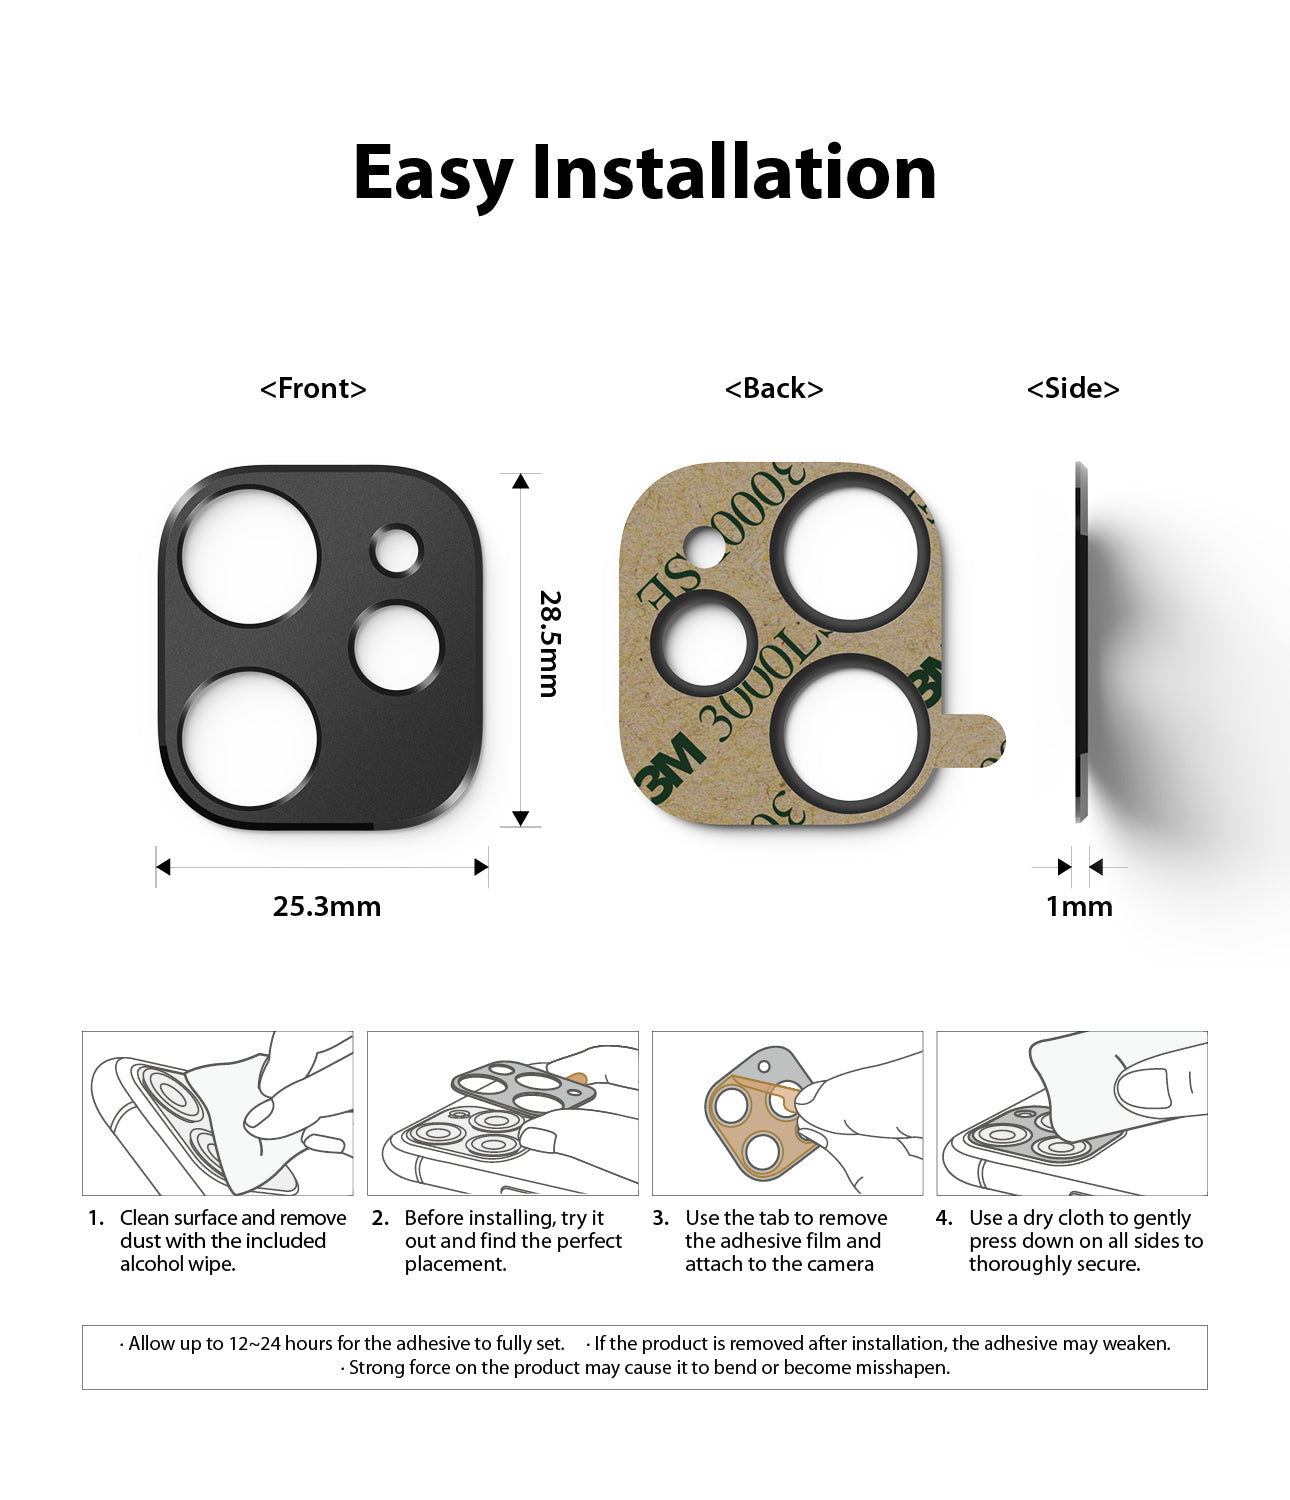 easdy installation guide